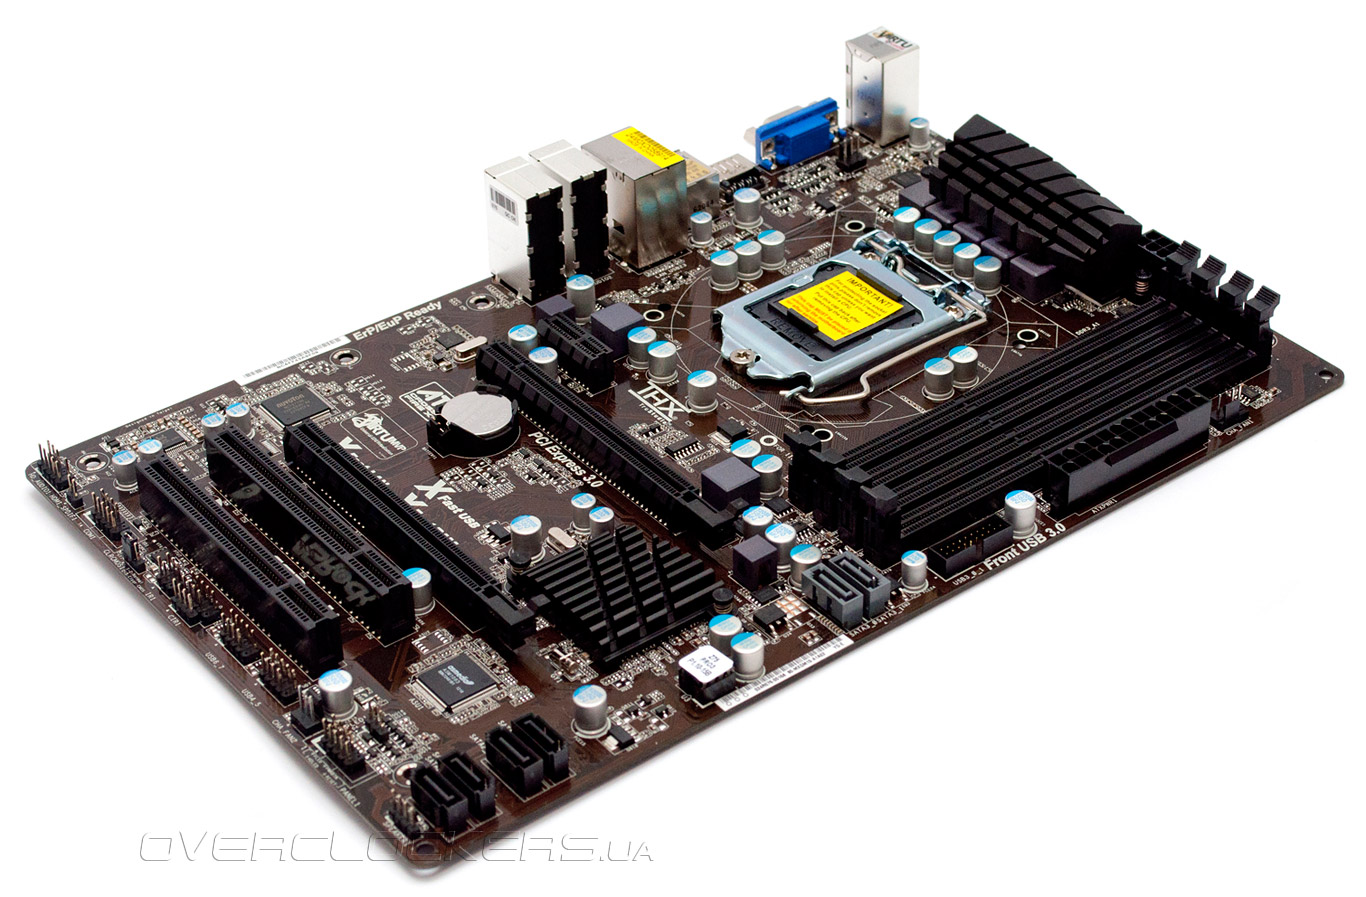 Asrock Z75 Pro3 XFast USB Windows Vista 32-BIT